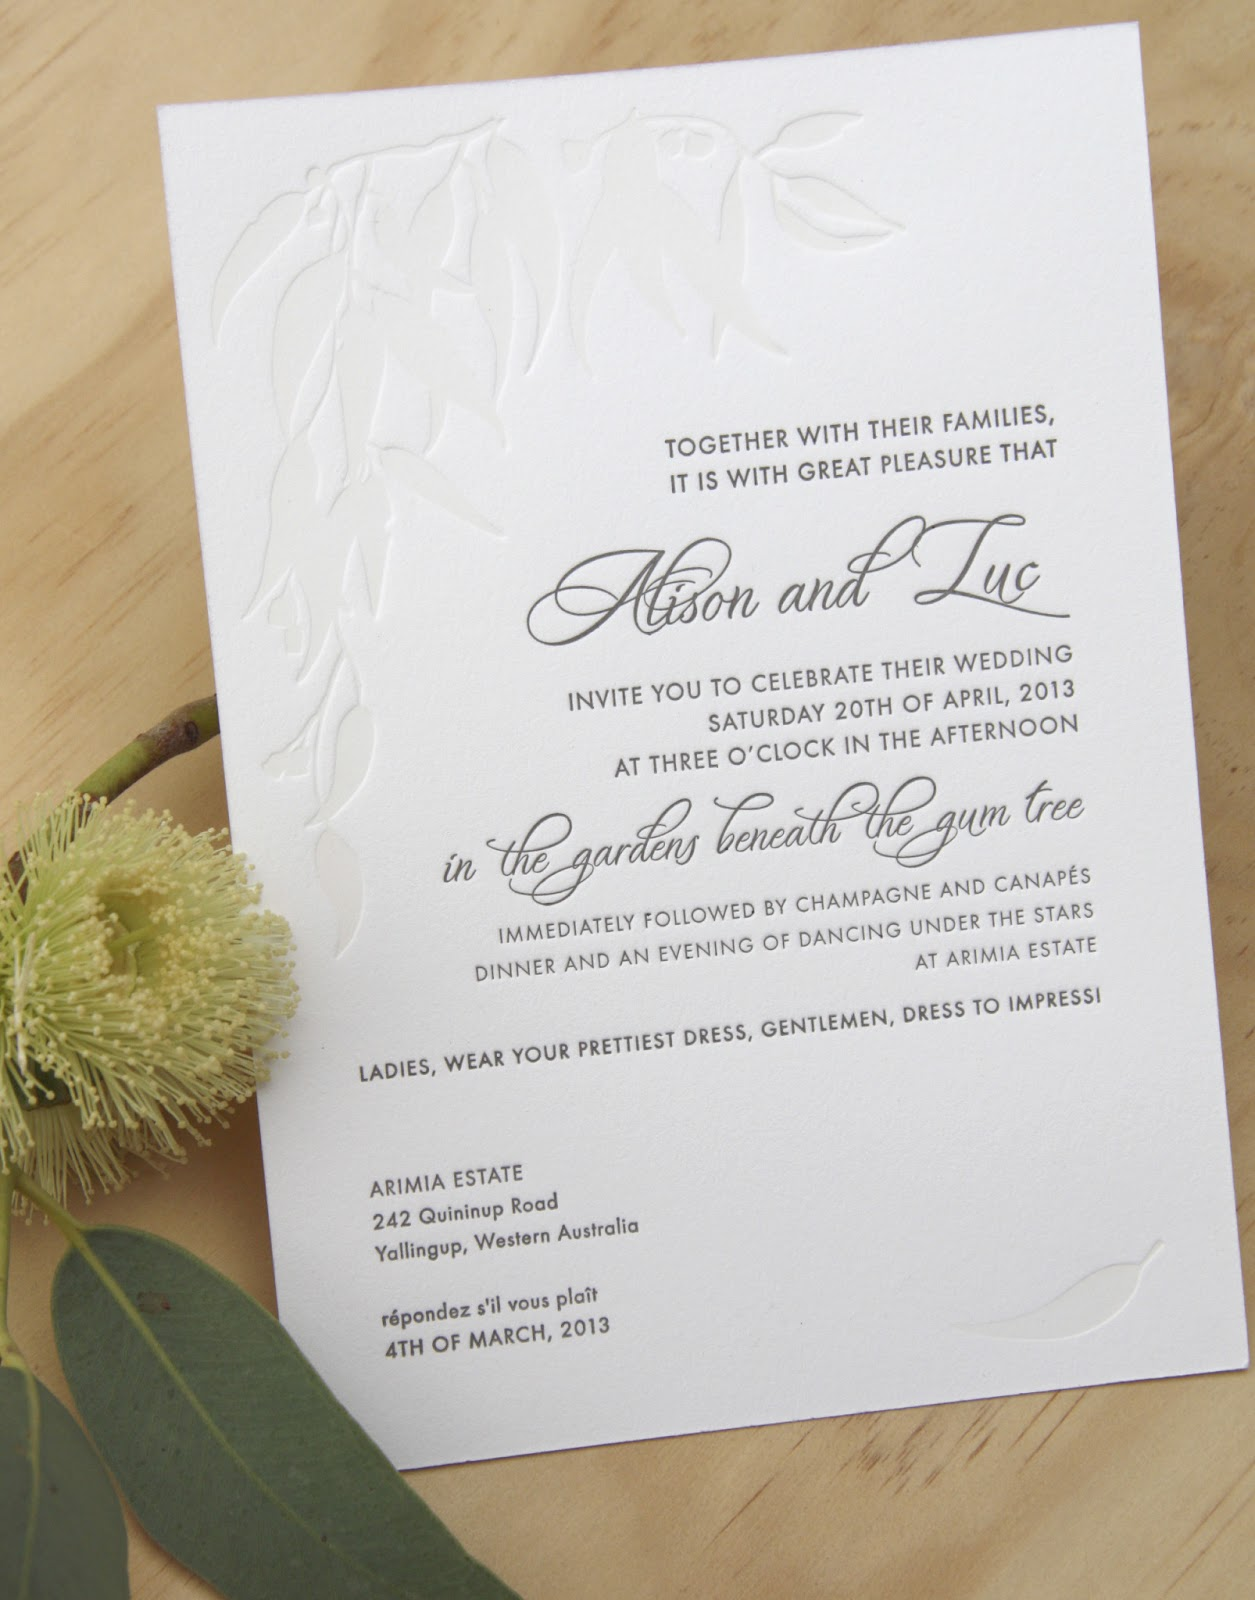 Fluid Ink Fine Letterpress of Australia: Gumtree wedding invitation.